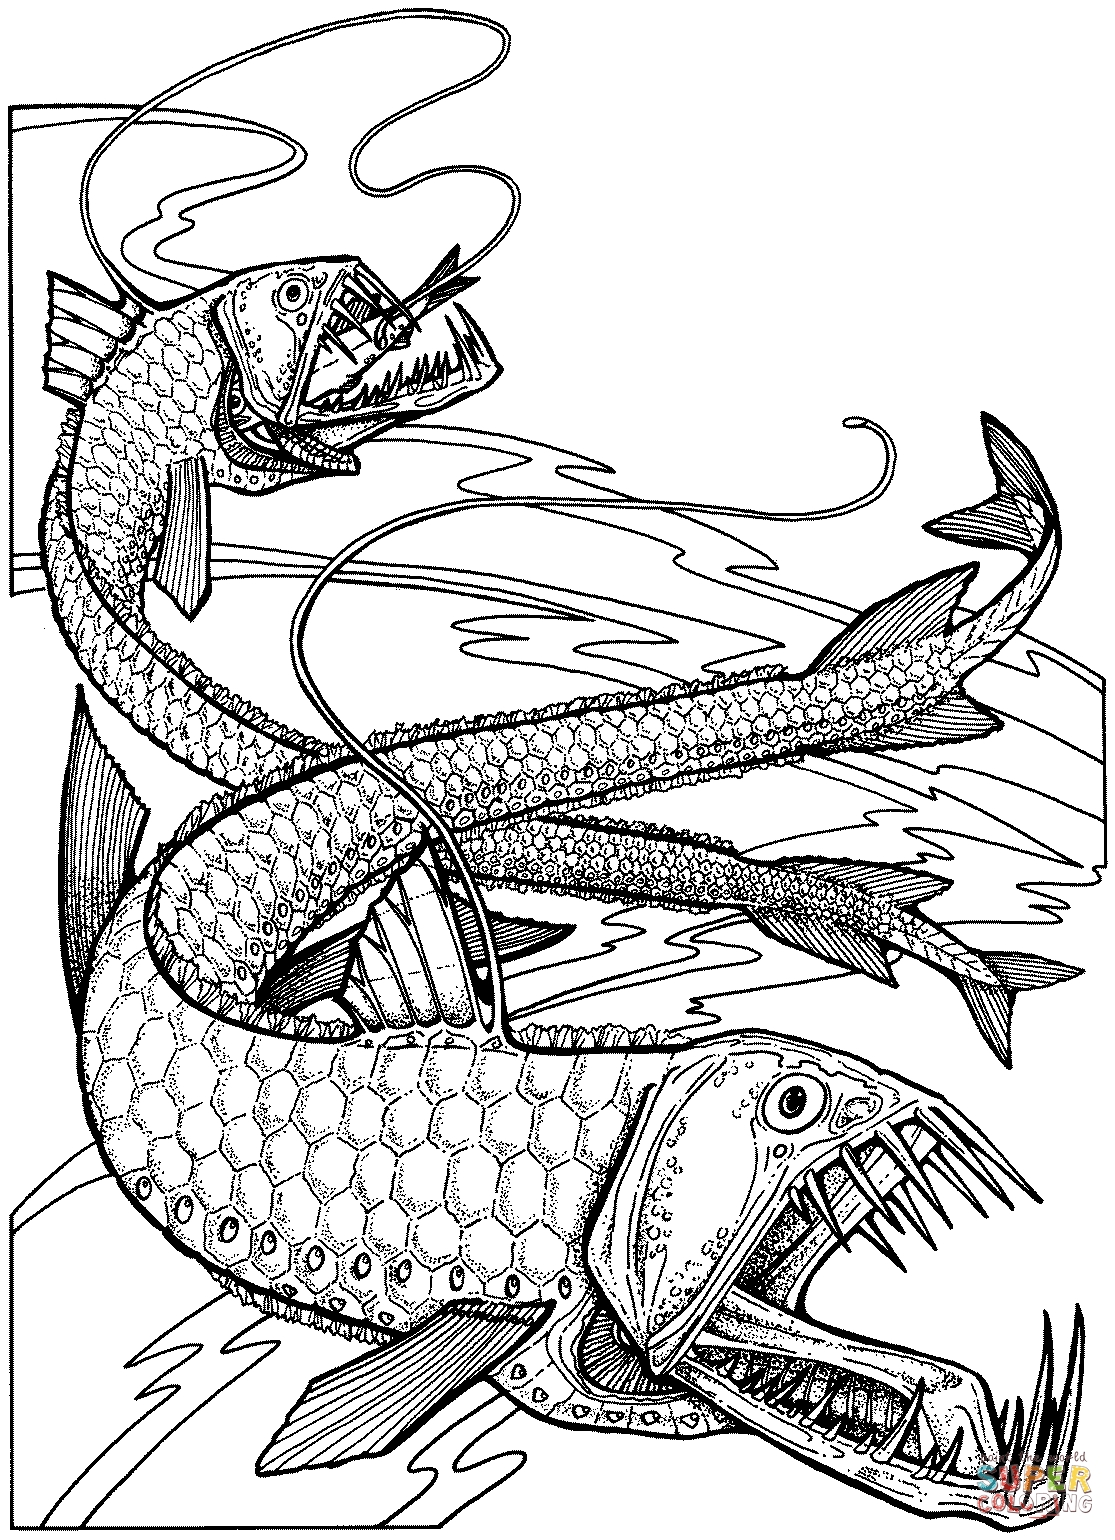 koi fish coloring page - viperfische